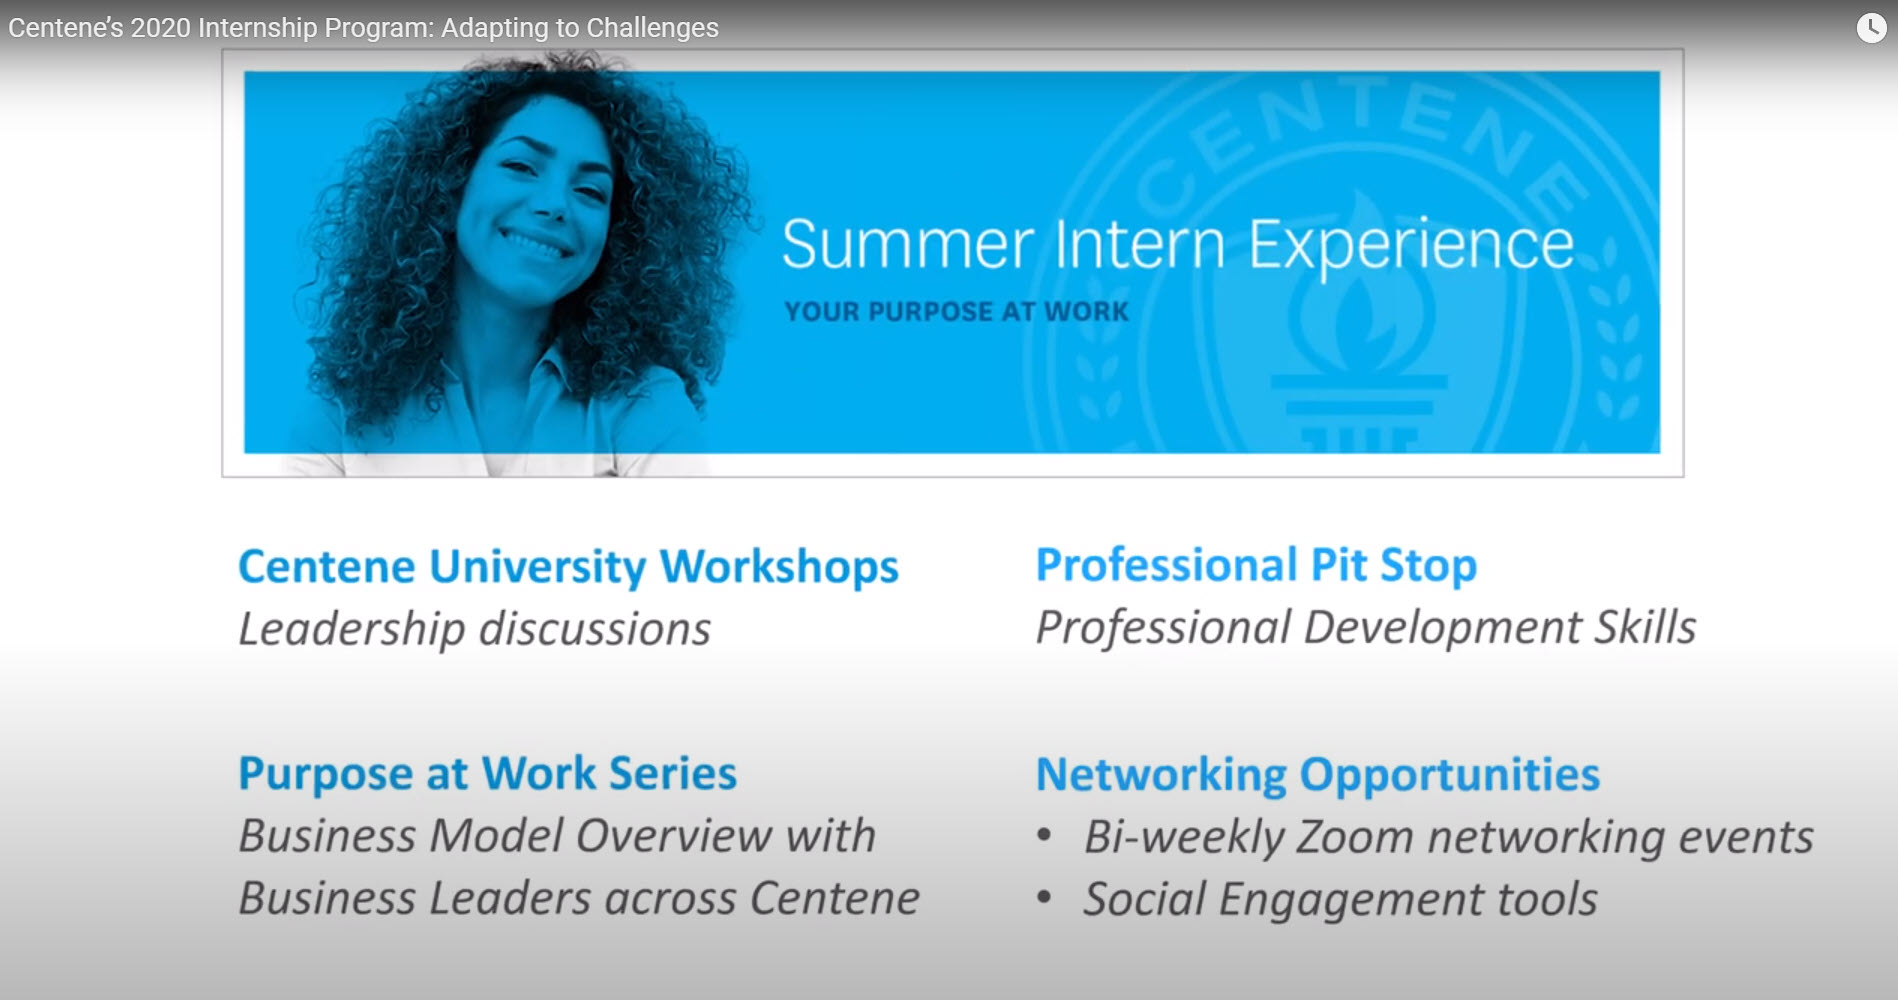 Summer Intern Experience, your purpose at work